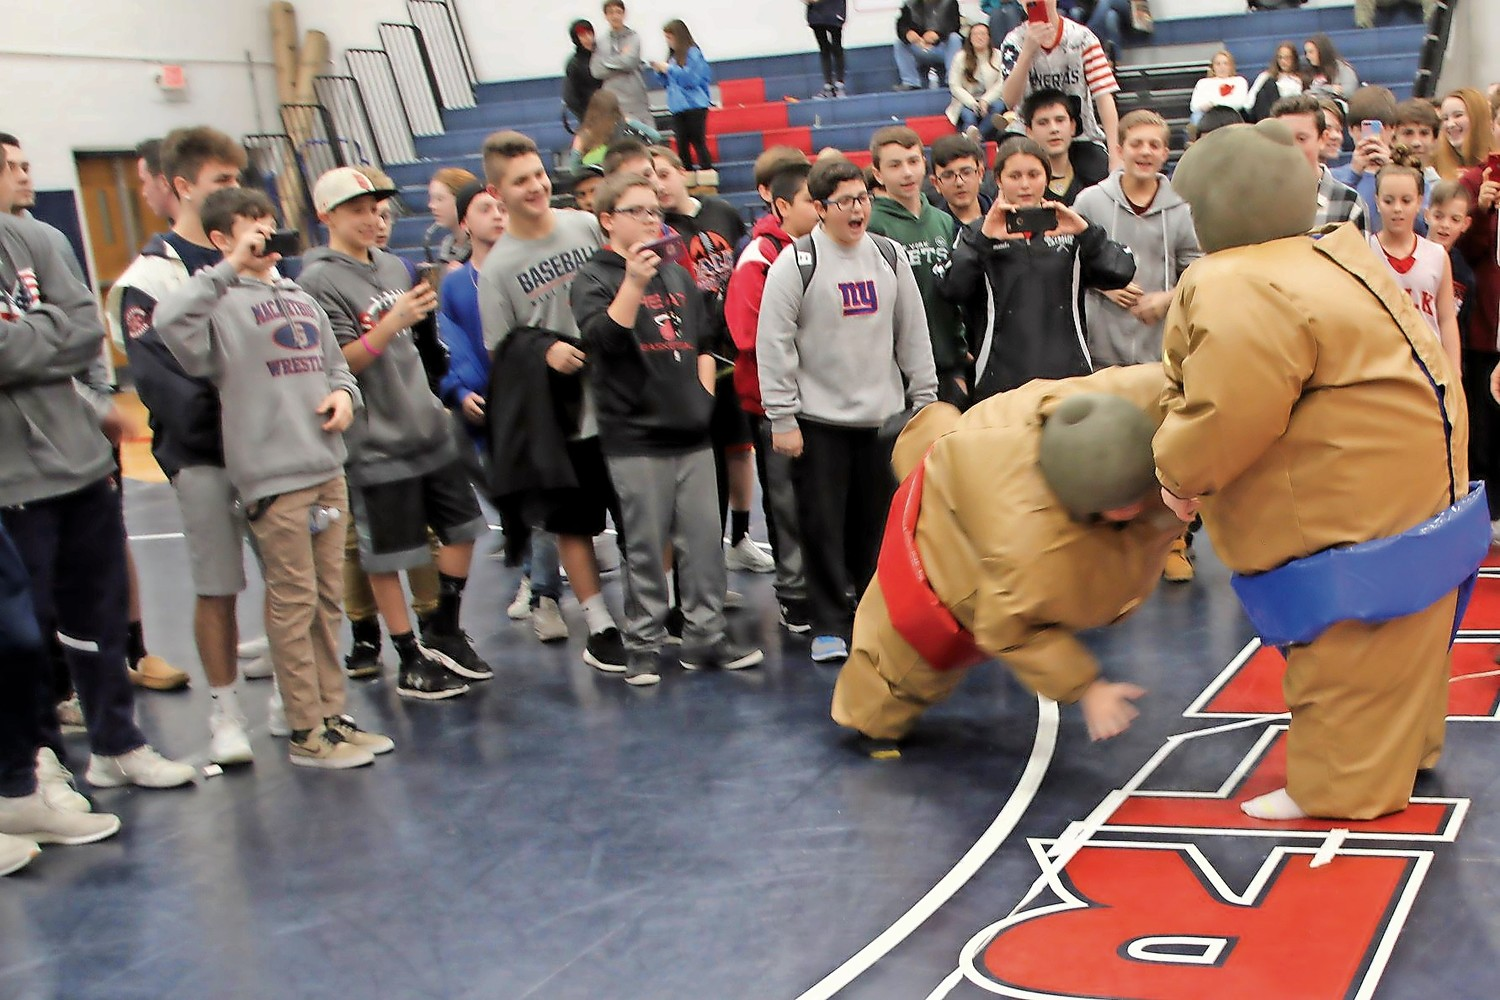 Students watched in amusement as sumo-wrestlers battled it out.